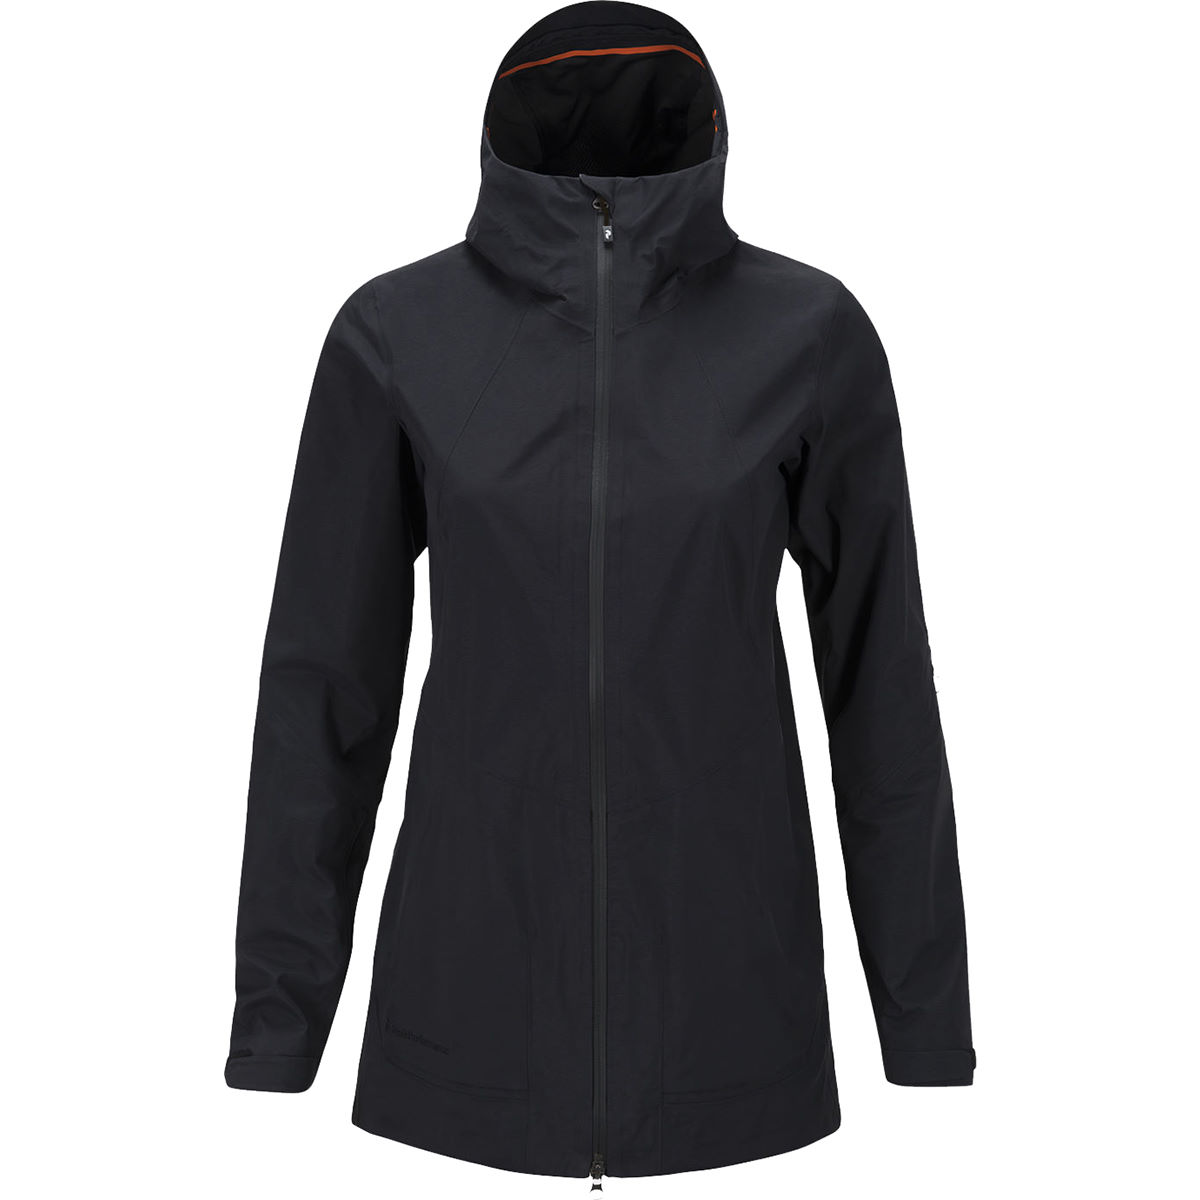 Image of Veste Femme Peak Performance CIVIL 3L - L Noir | Vestes